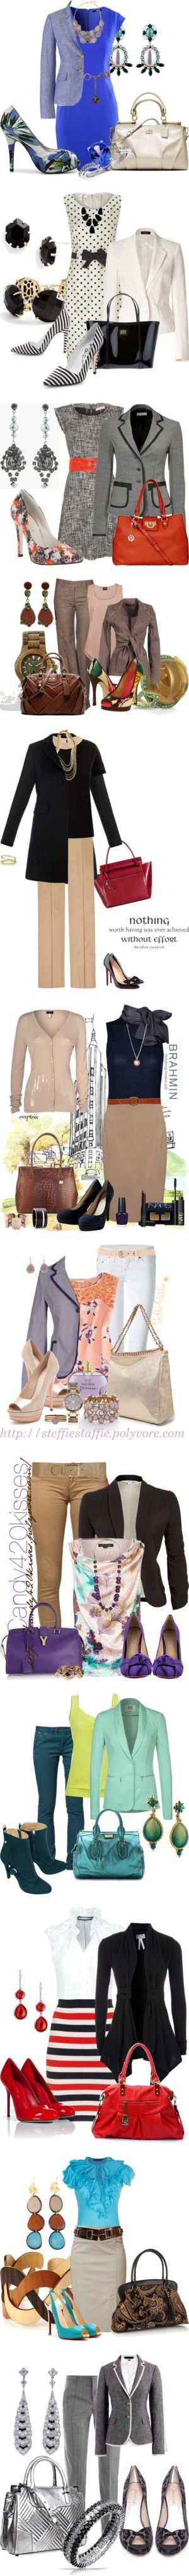 """work Wear 3"" by coromitas on Polyvore"